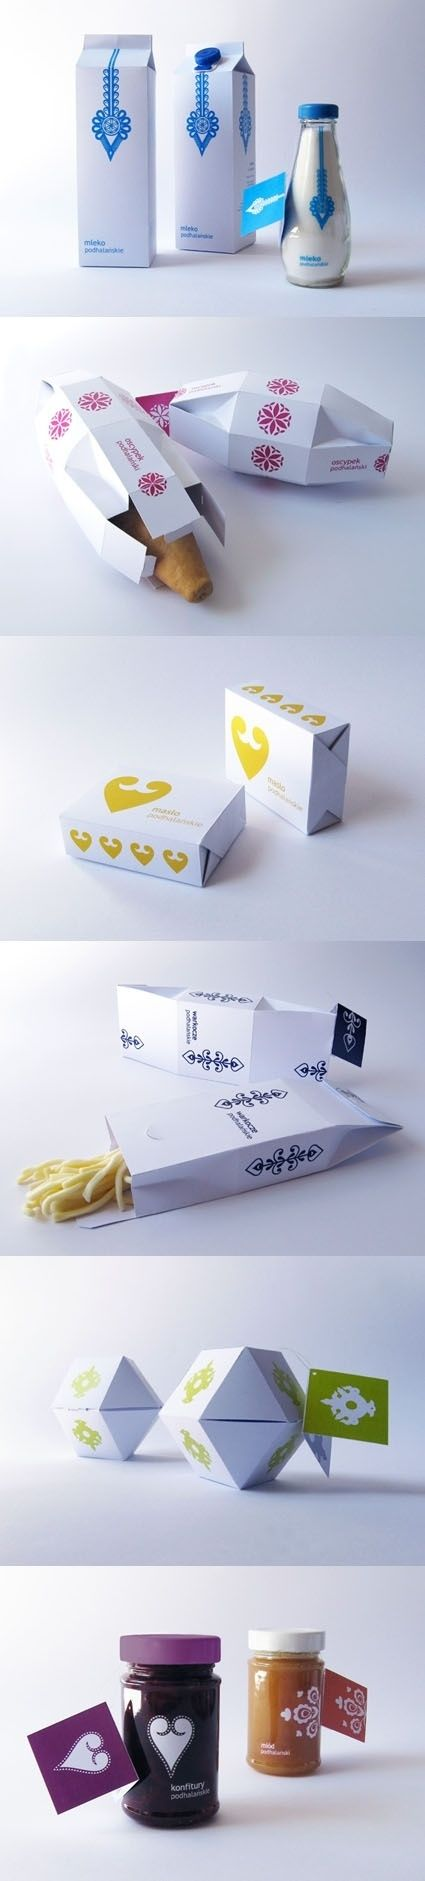 #packaging #branding #design @N17DG